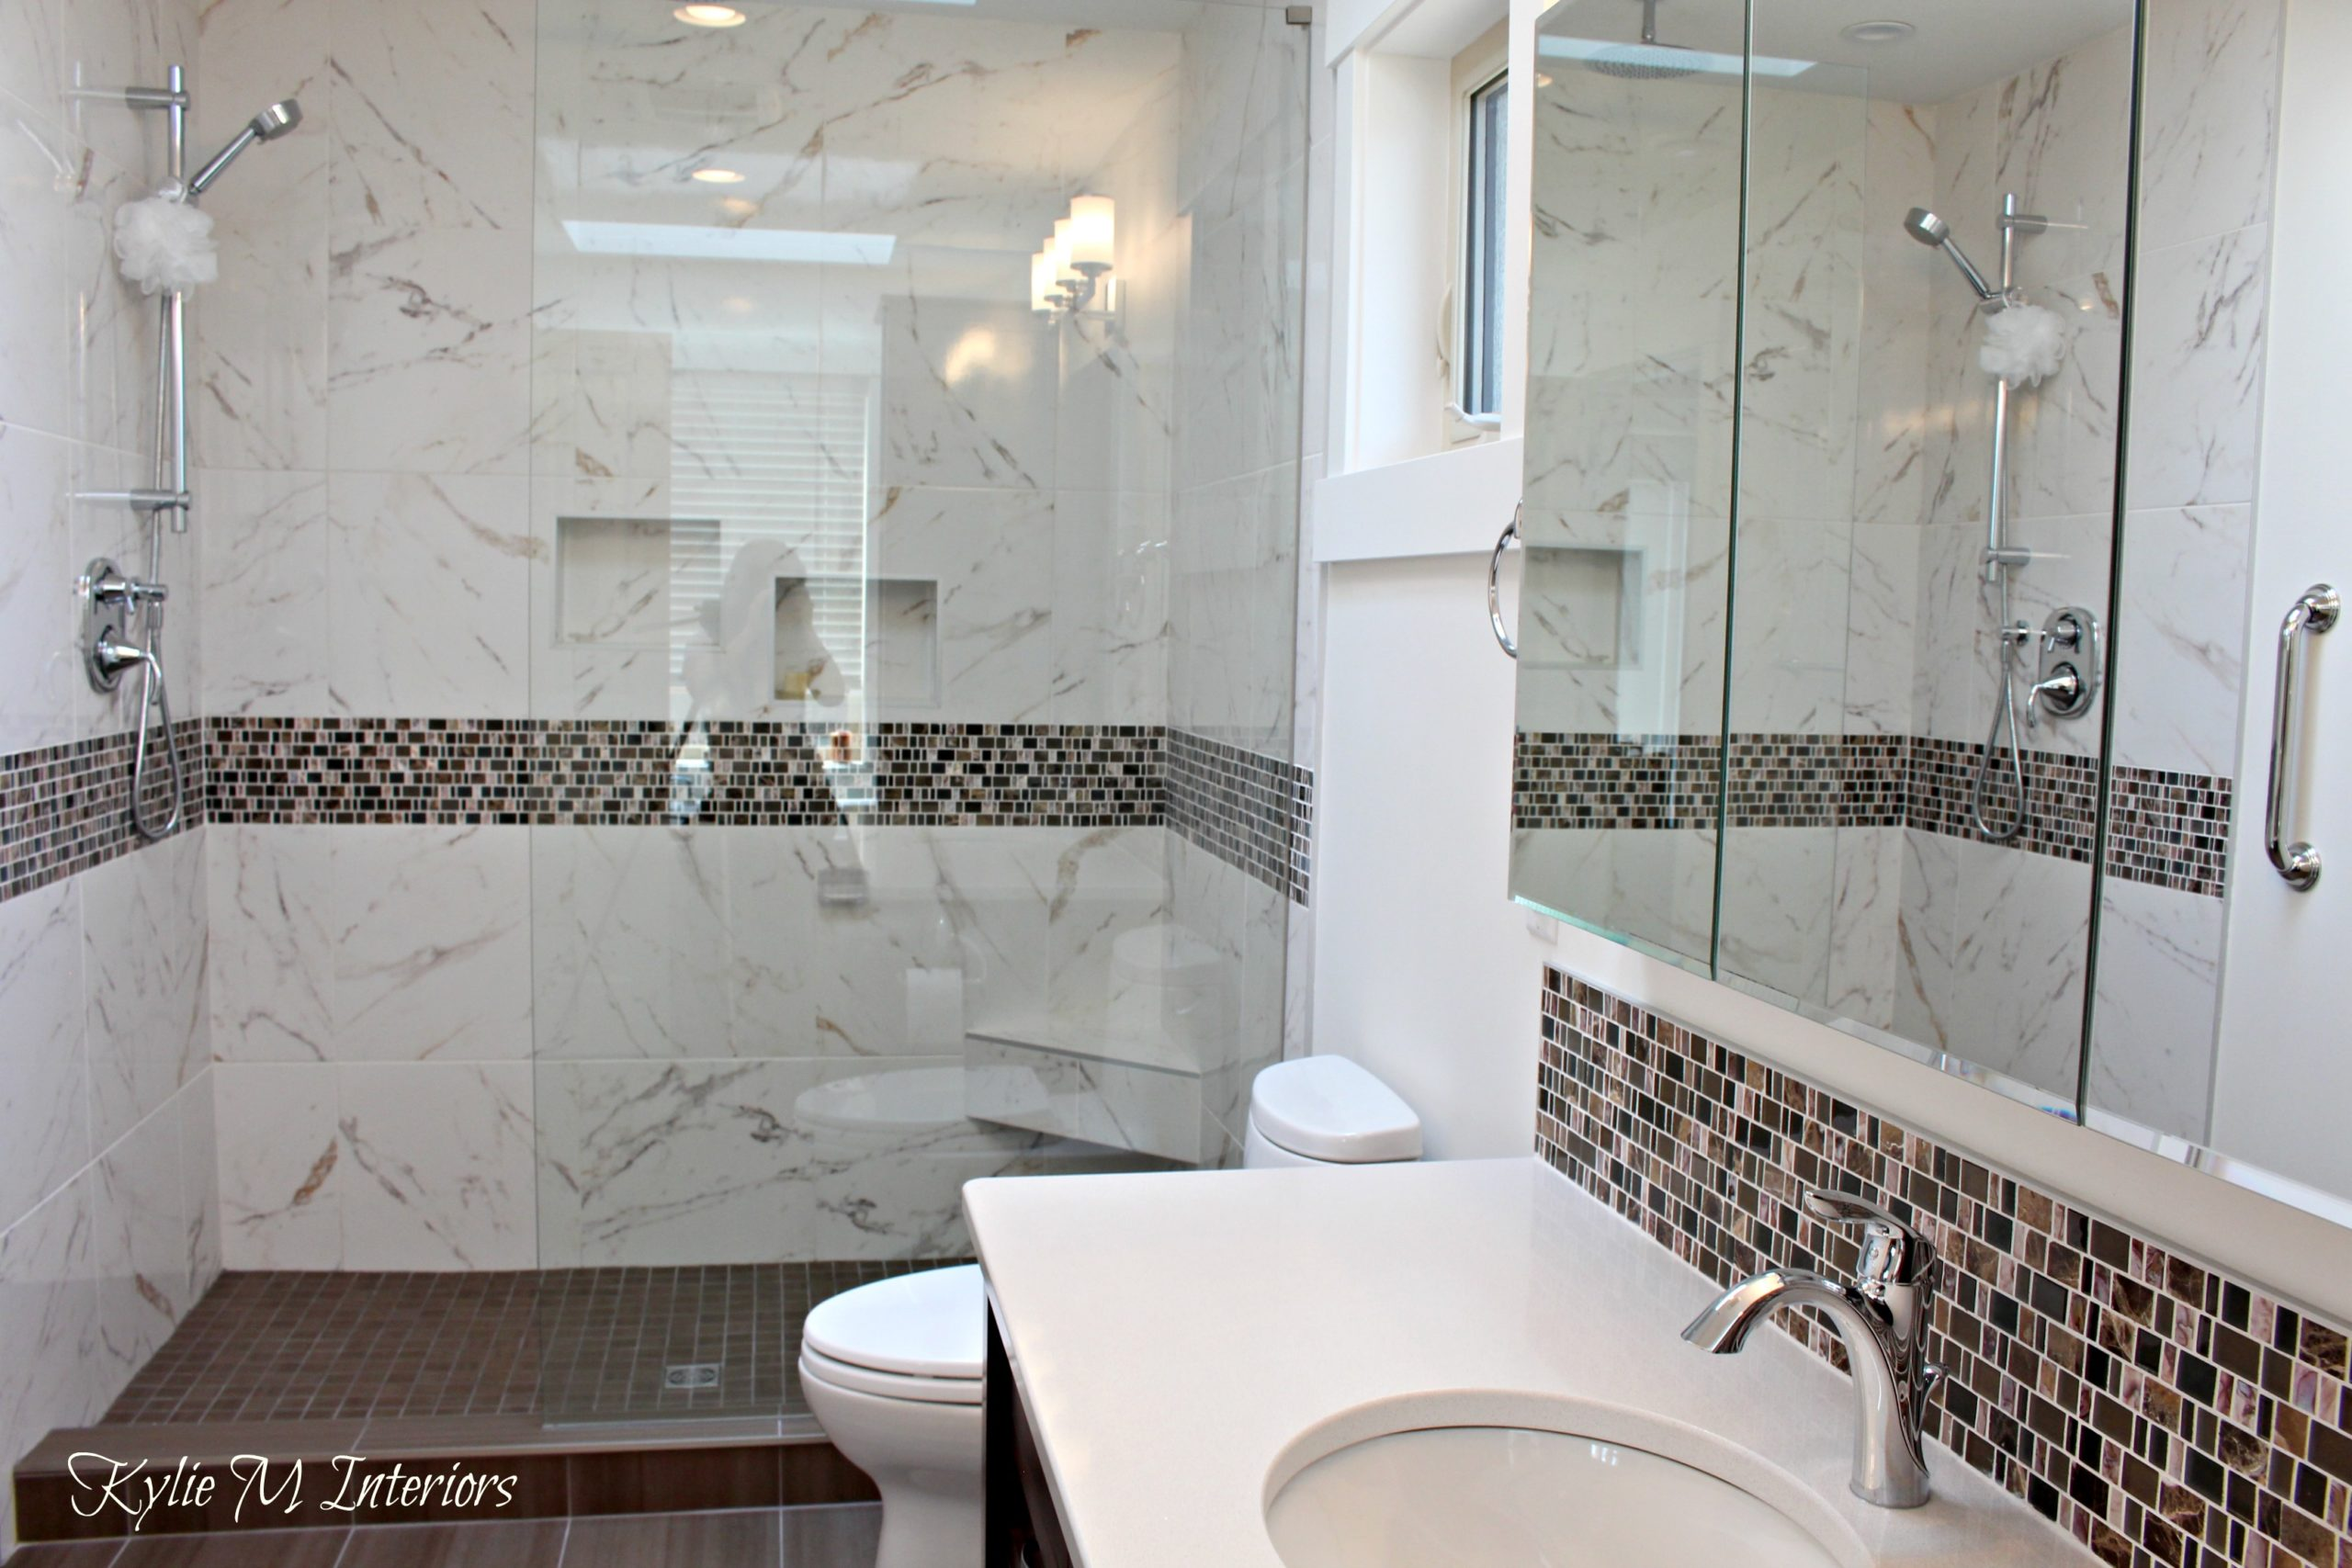 Mosaic Tile Bathroom Design Ideas: Walk In Shower In Bathroom With Pink And Brown Mosaic Tile